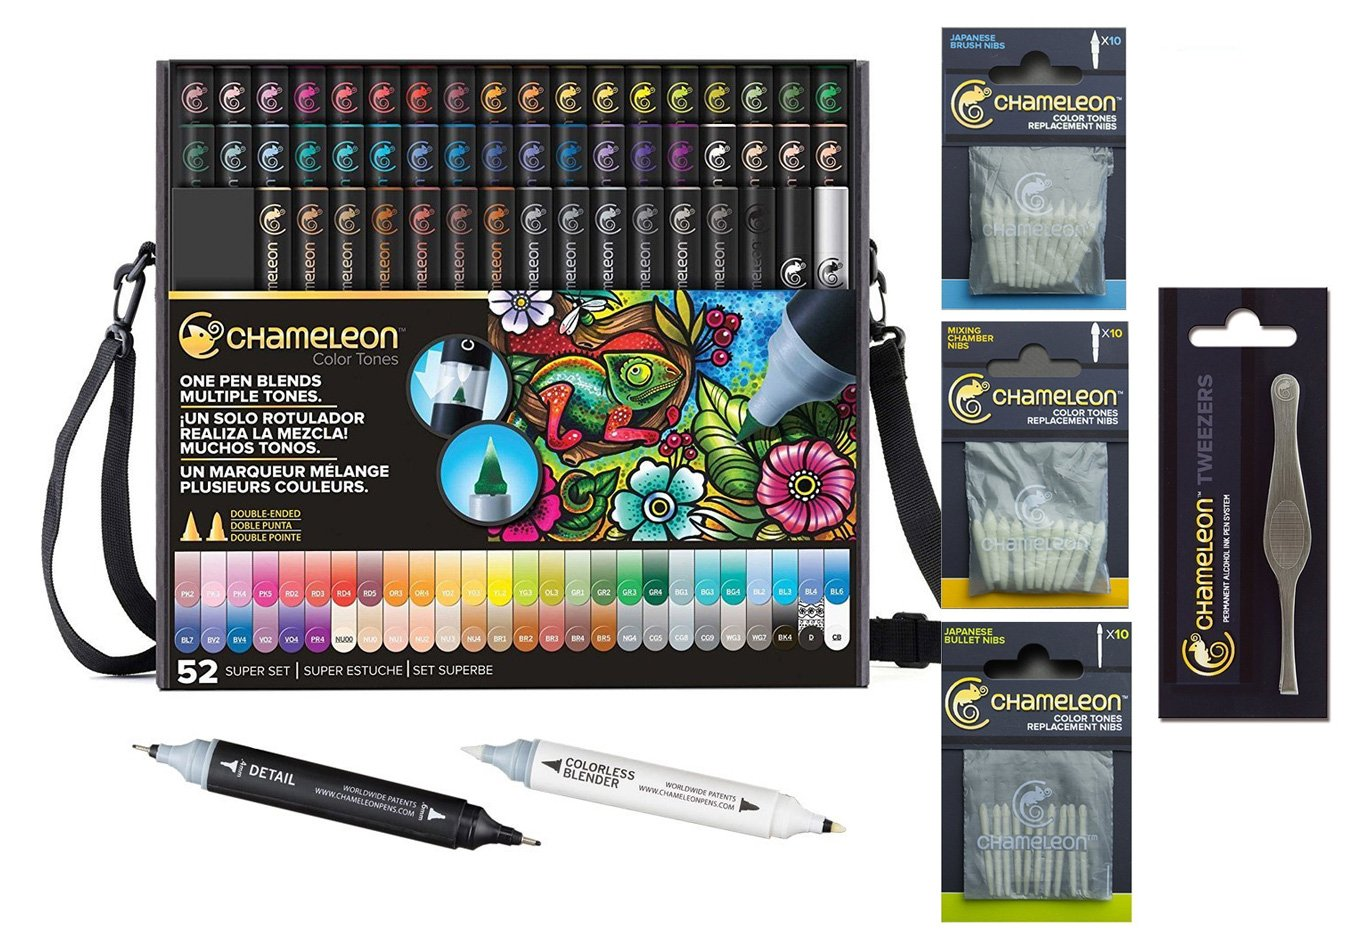 Chameleon Deluxe Bundle 52-Pen Set with Case, Extra Blender, Extra Detail Pen and 4 Packs of Color Cards by Chameleon